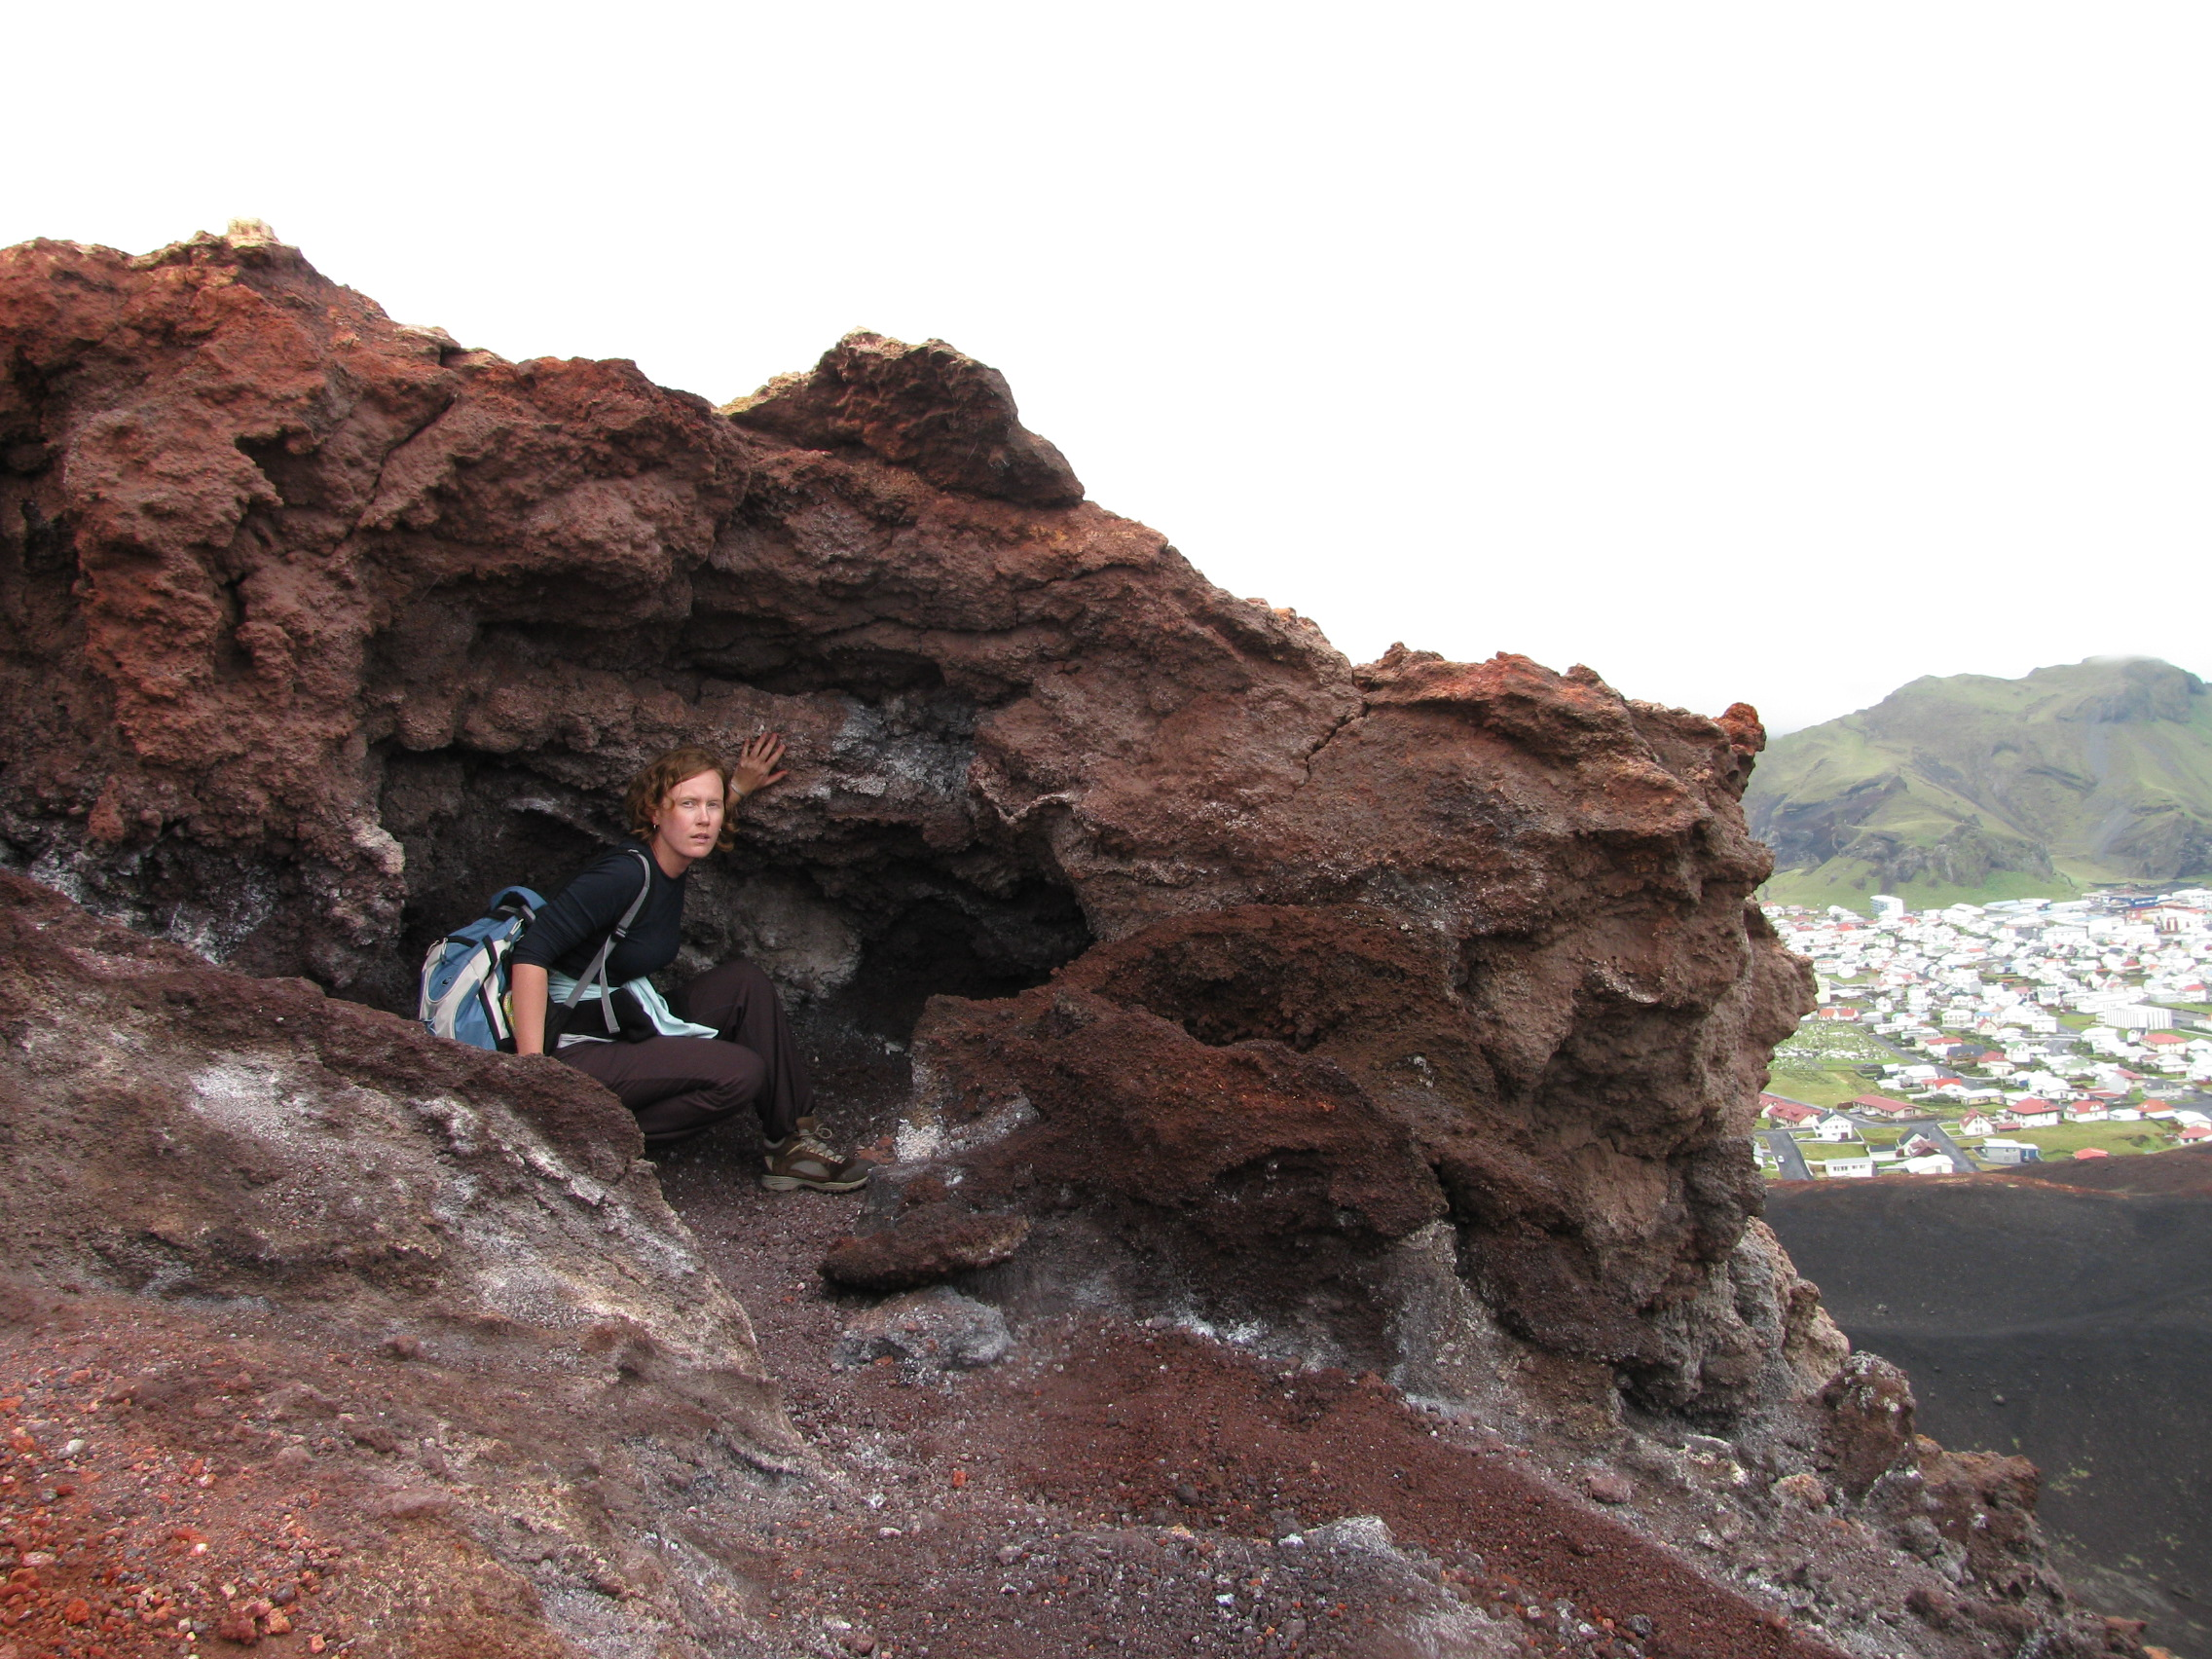 The author is crouching inside a small recess in a large jagged red rock at the top of Eldfell, with her hand extended to touch the side. There is a glimpse of the town and another mountain in the distant background.